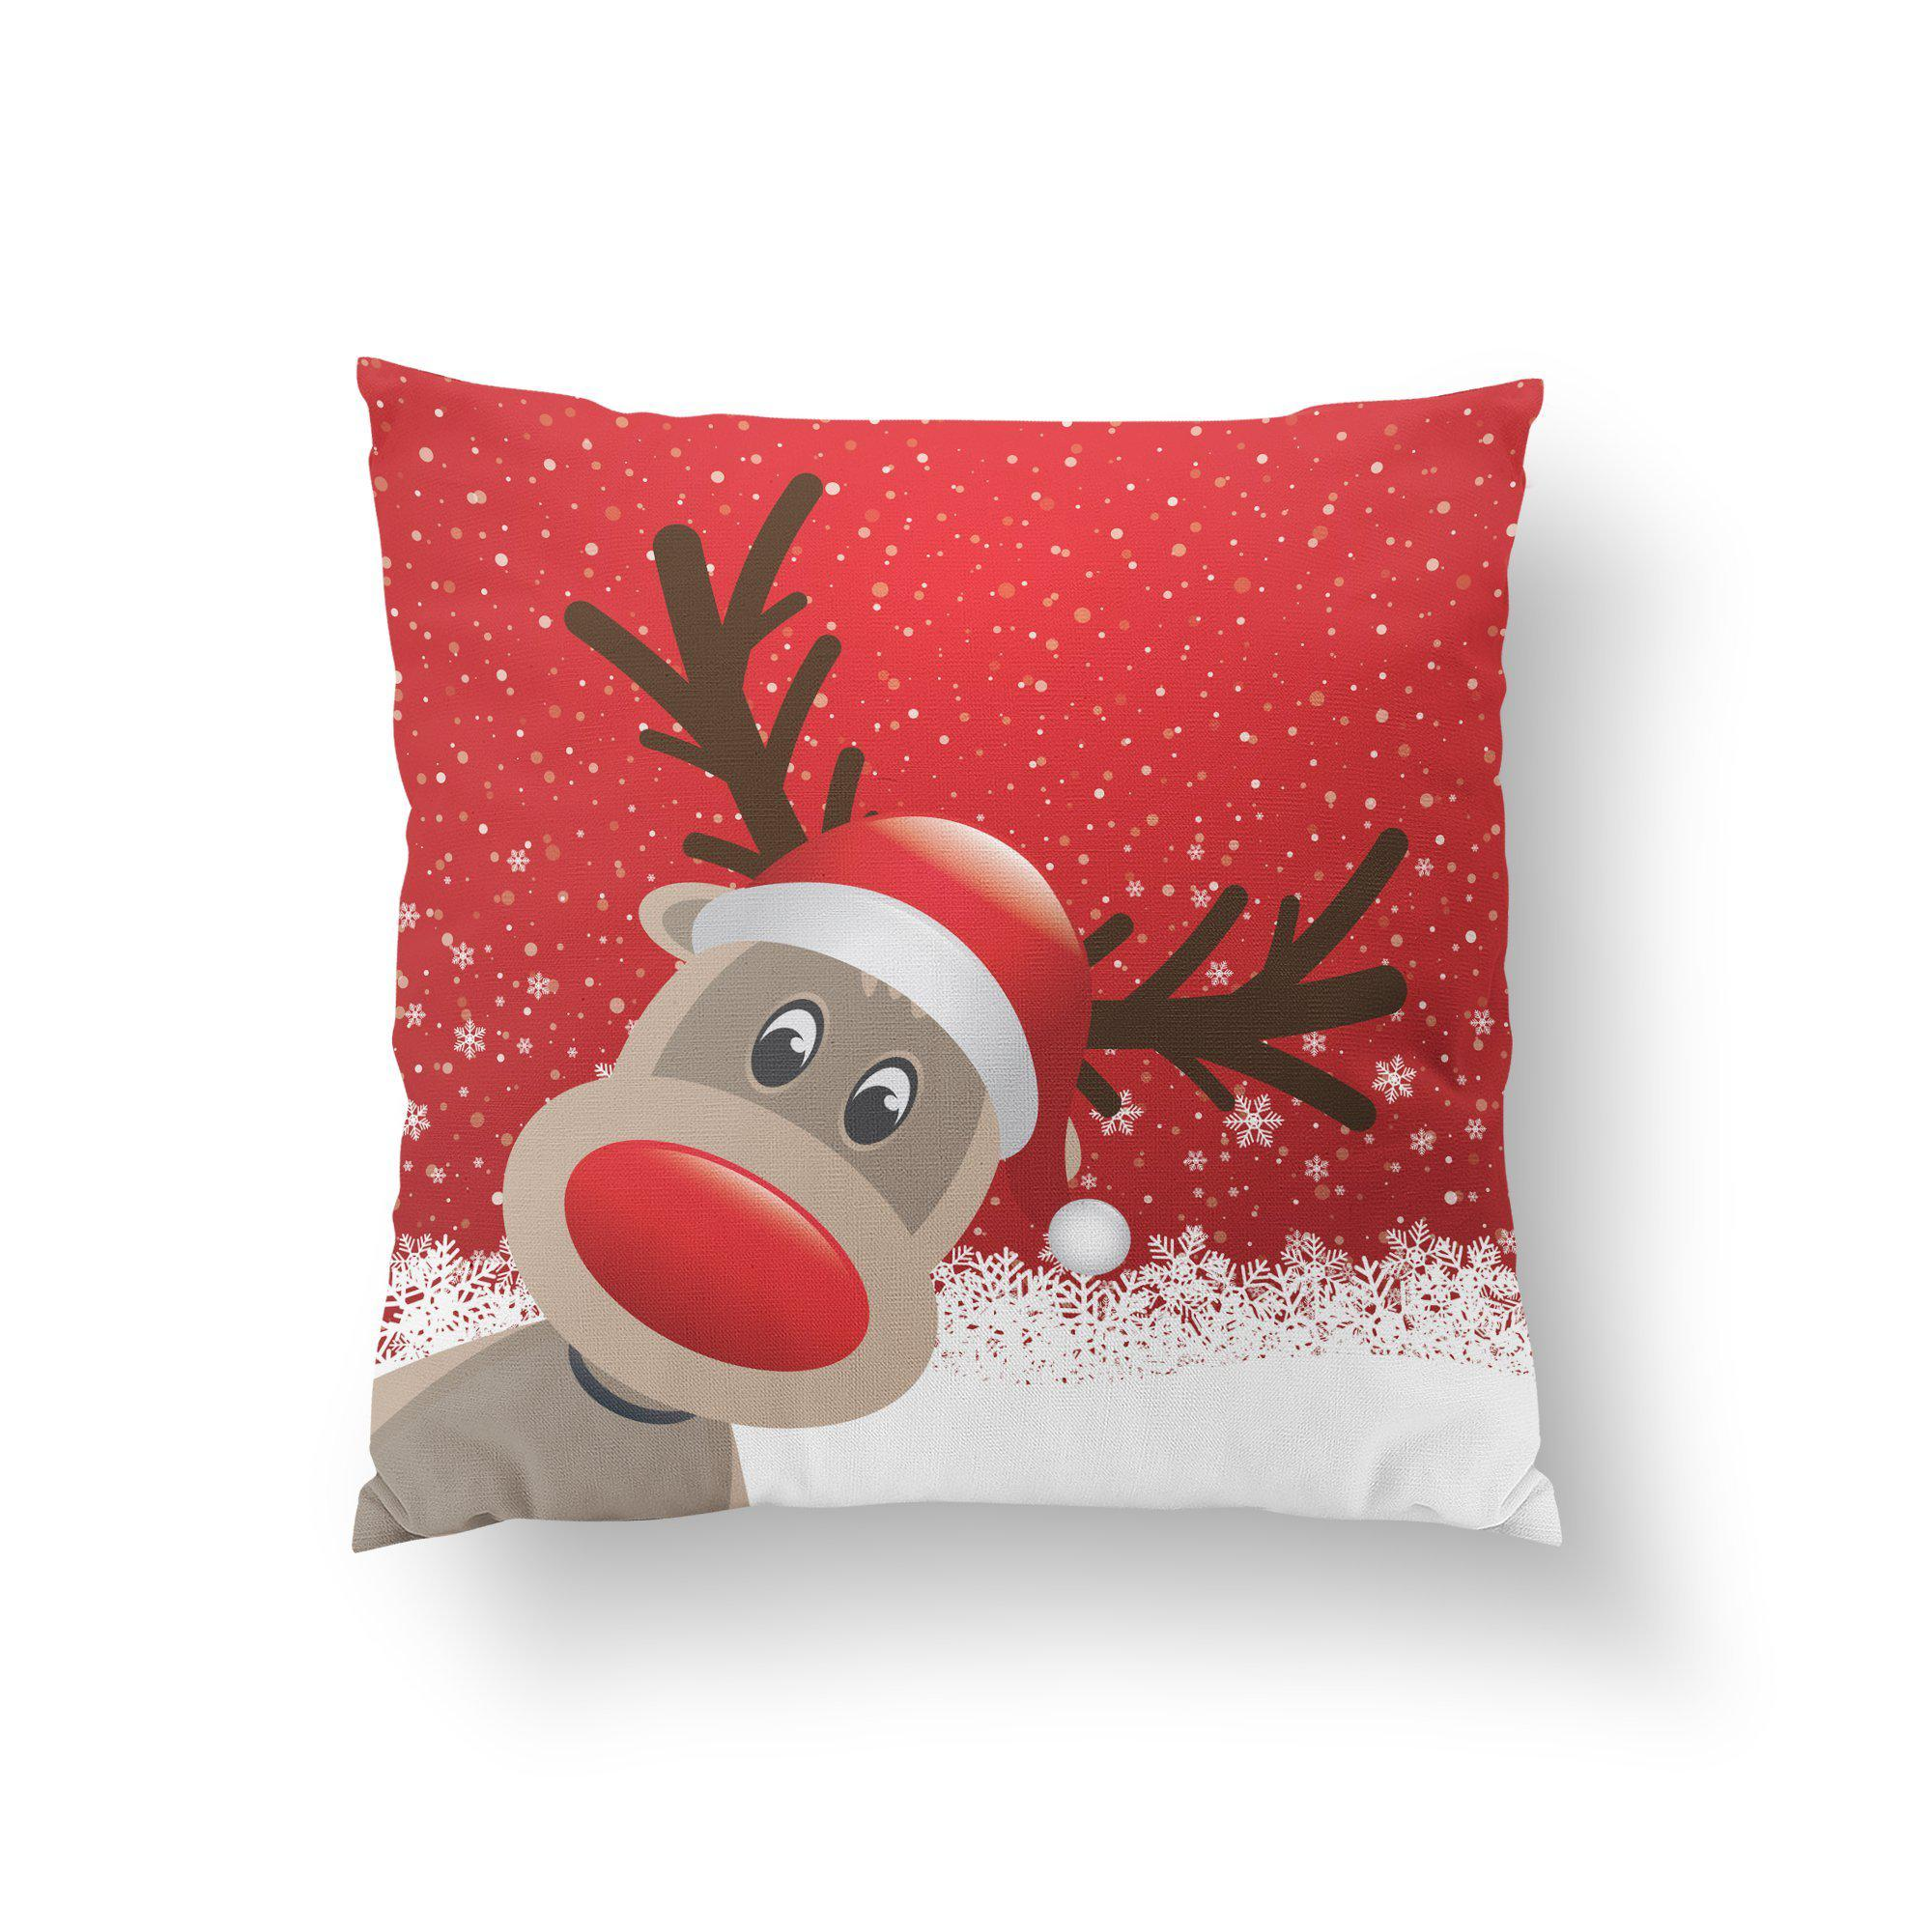 Cute Christmas Pillows-W.FRANCIS